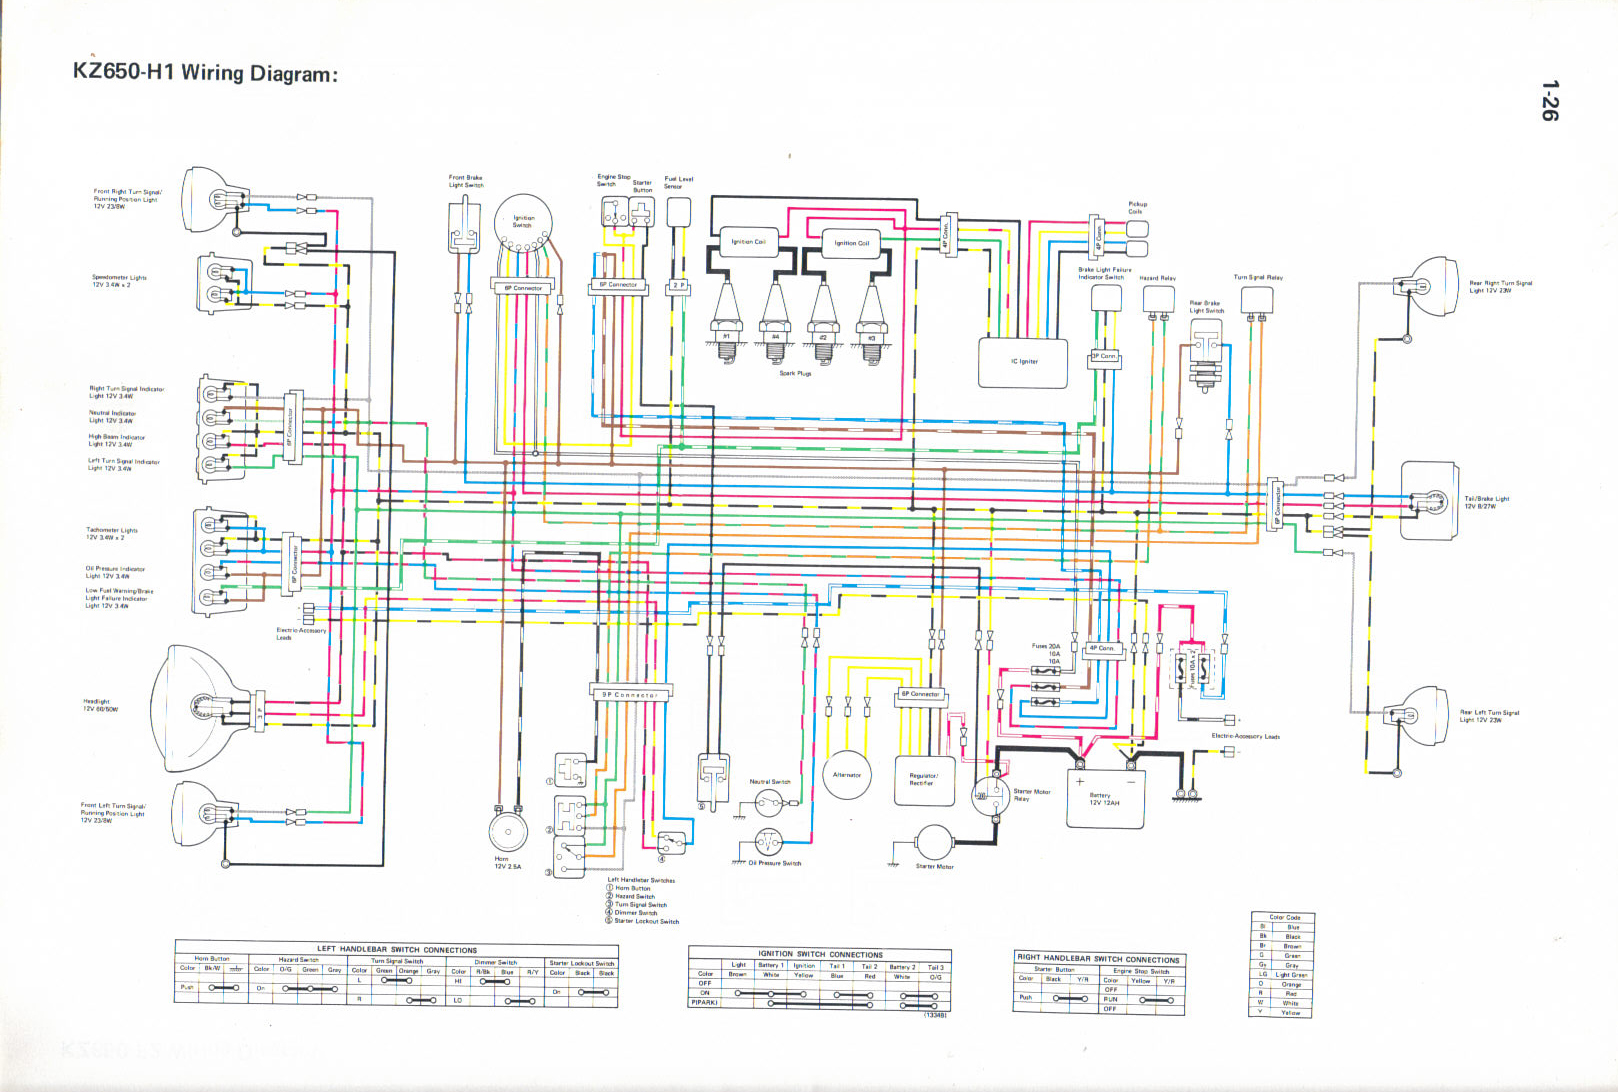 82 kz1000 wiring diagram wiring diagram inside 82 kz1000 wiring diagram wiring diagram home 82 kz1000 wiring diagram